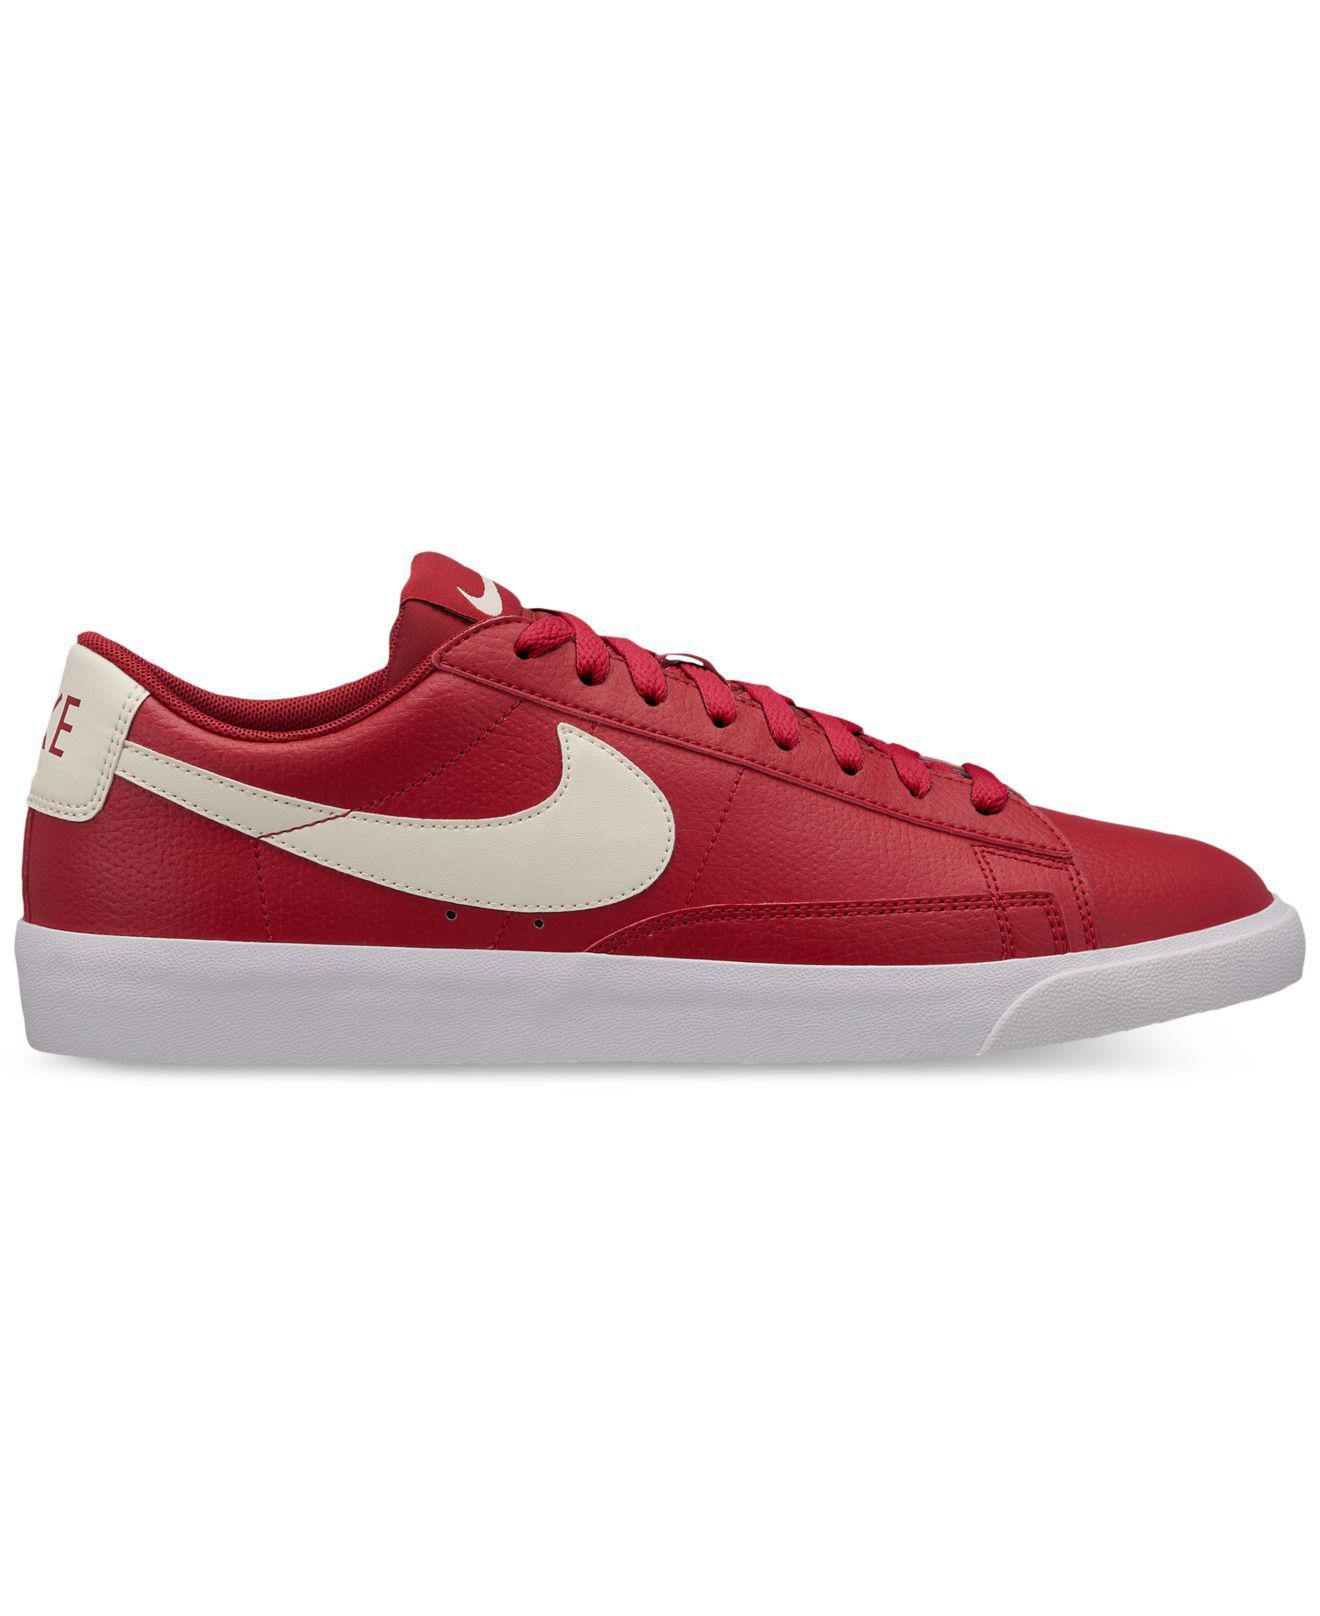 Nike. Men's Blazer Low Leather Casual Sneakers From Finish Line